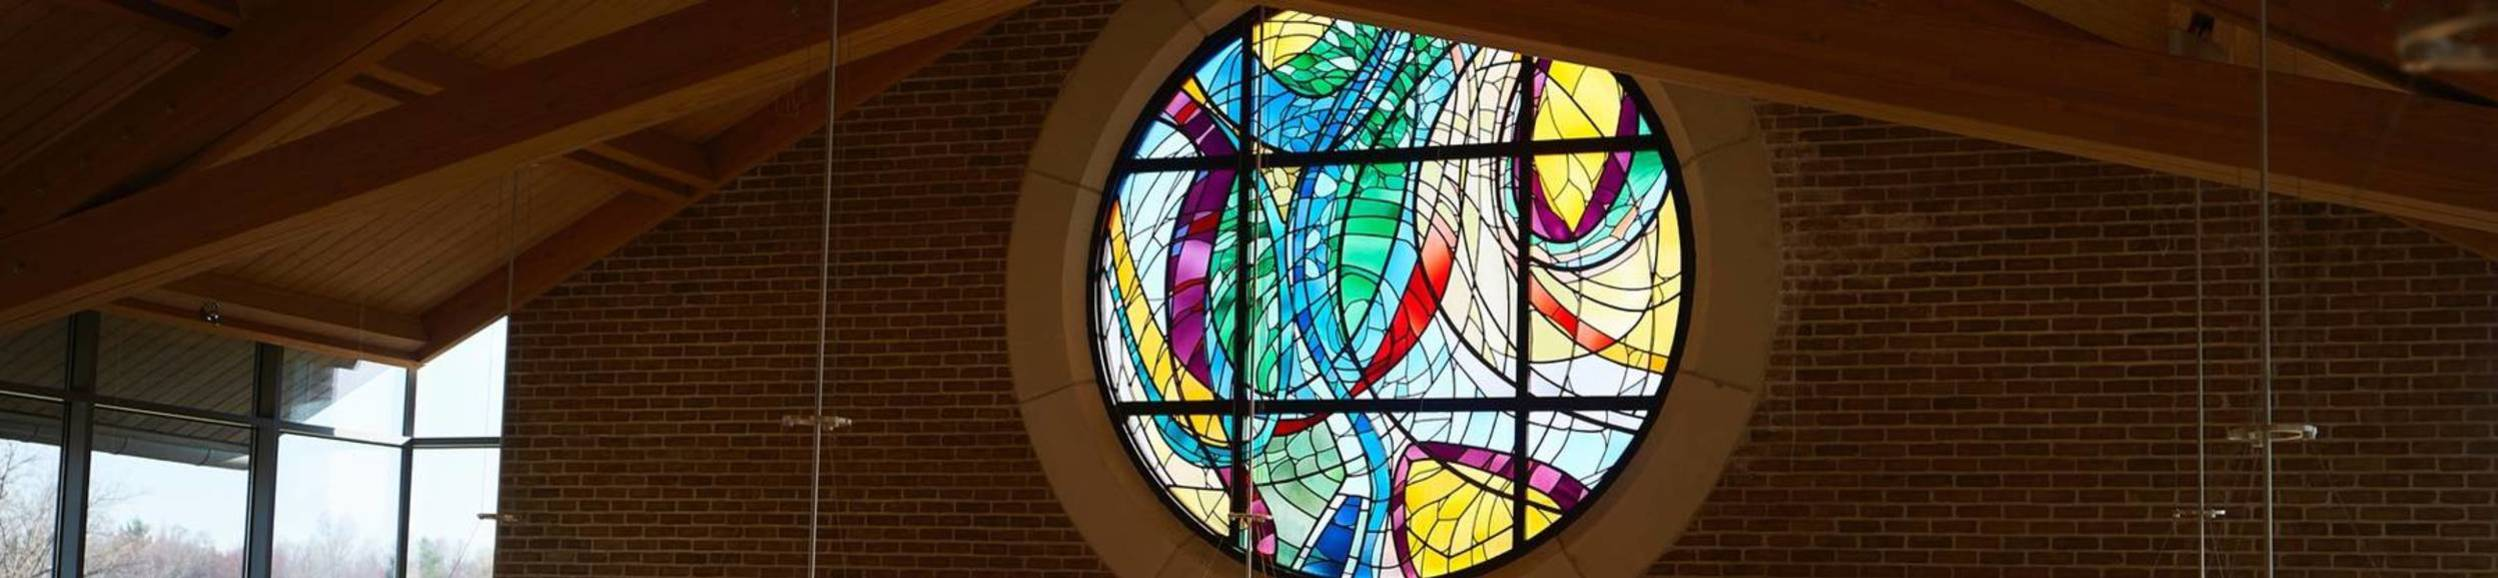 Ursuline college stained glass window5